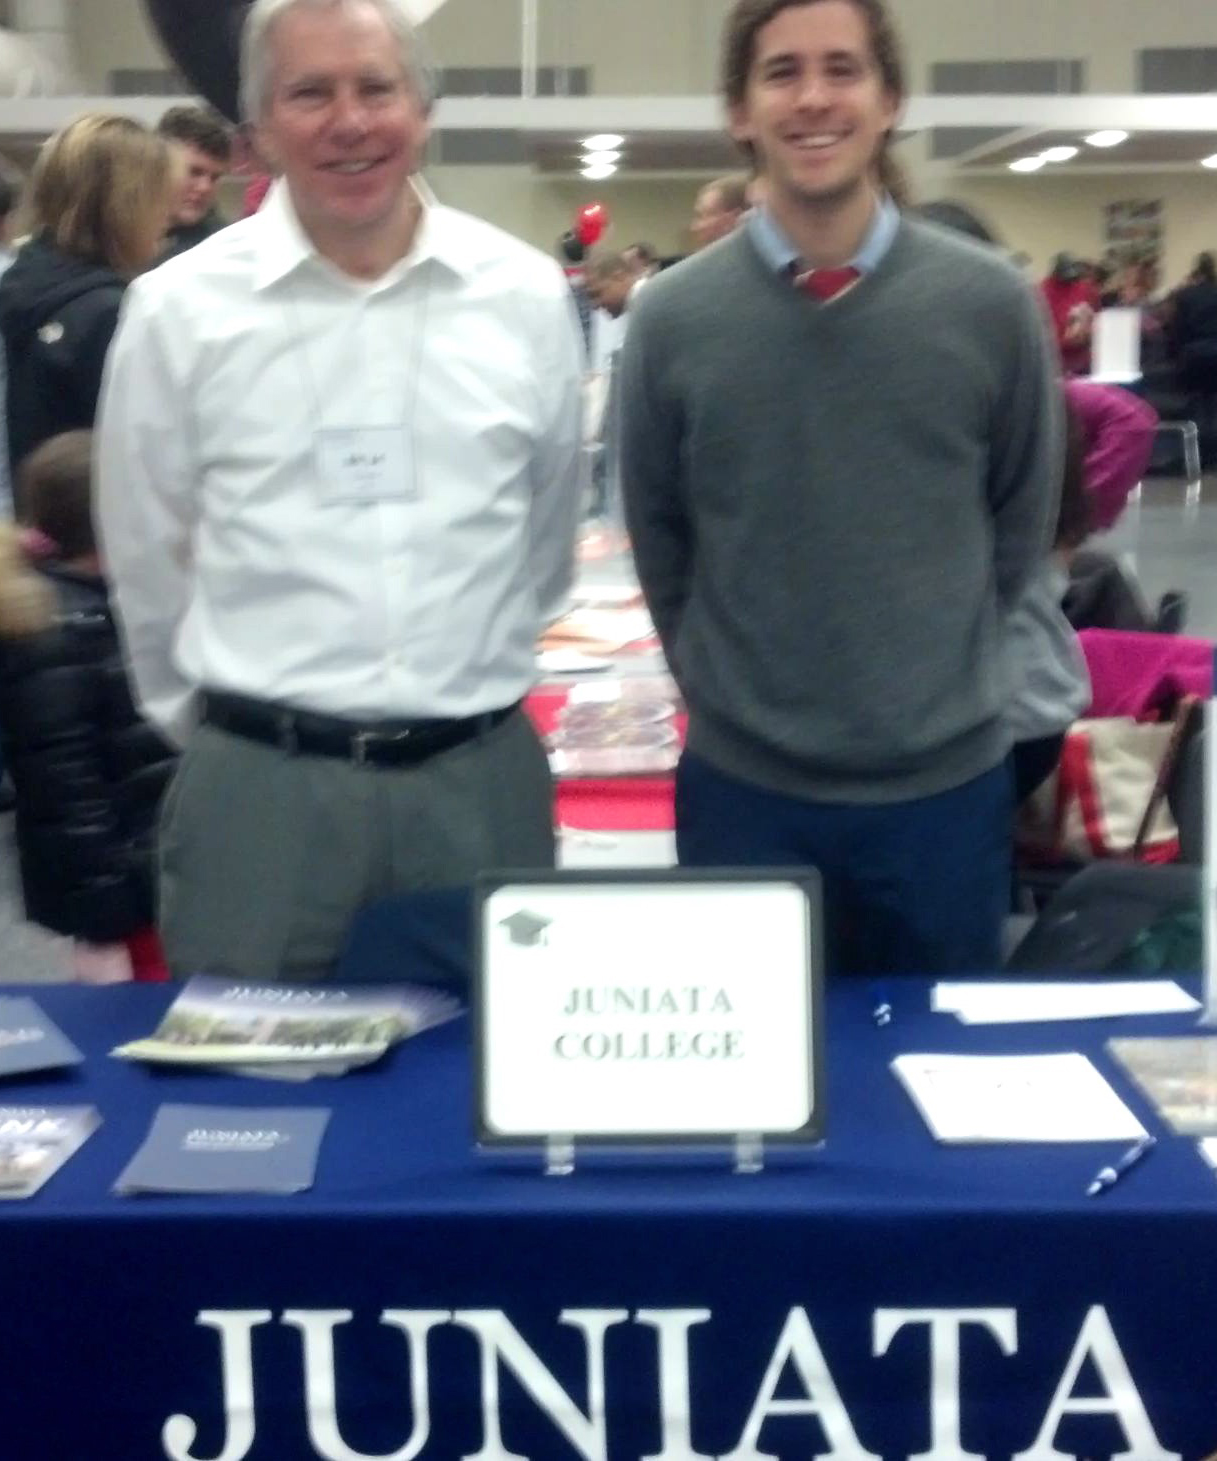 Bill Chew and Casey Chew representing Juniata College at a College Fair